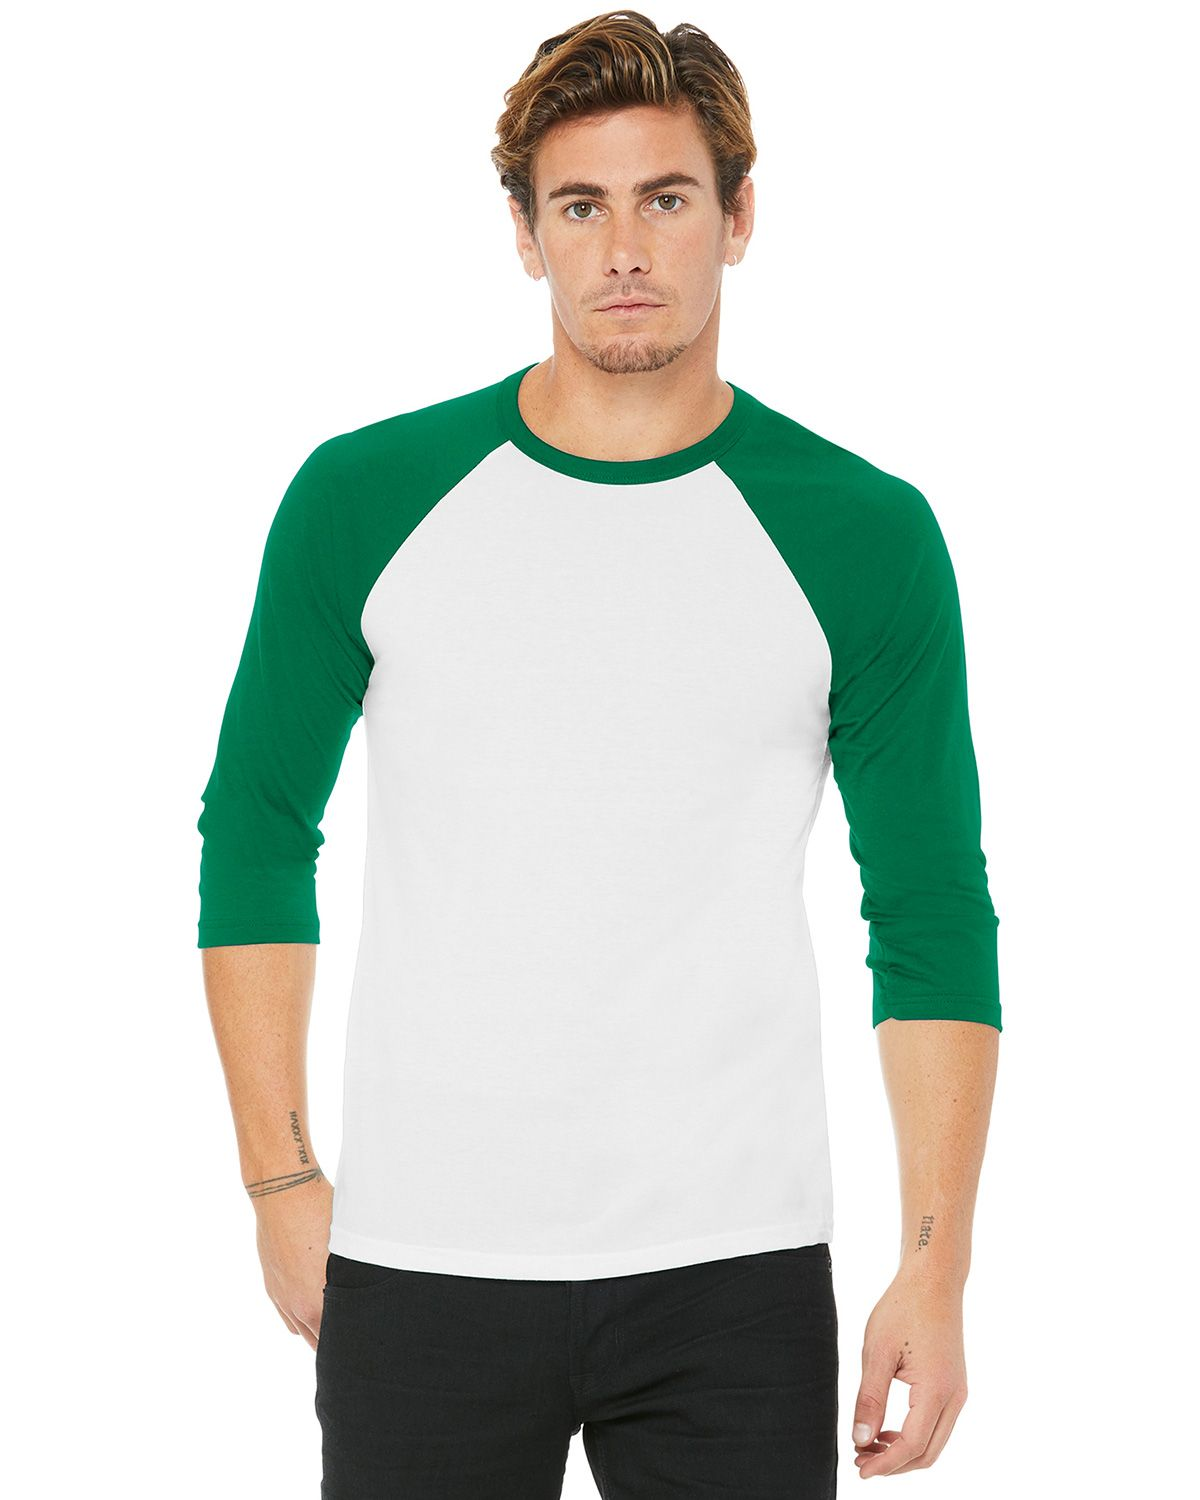 Bella + Canvas BC3200 Unisex 3/4-Sleeve Baseball Tee - White/ Kelly - XS from Bella + Canvas